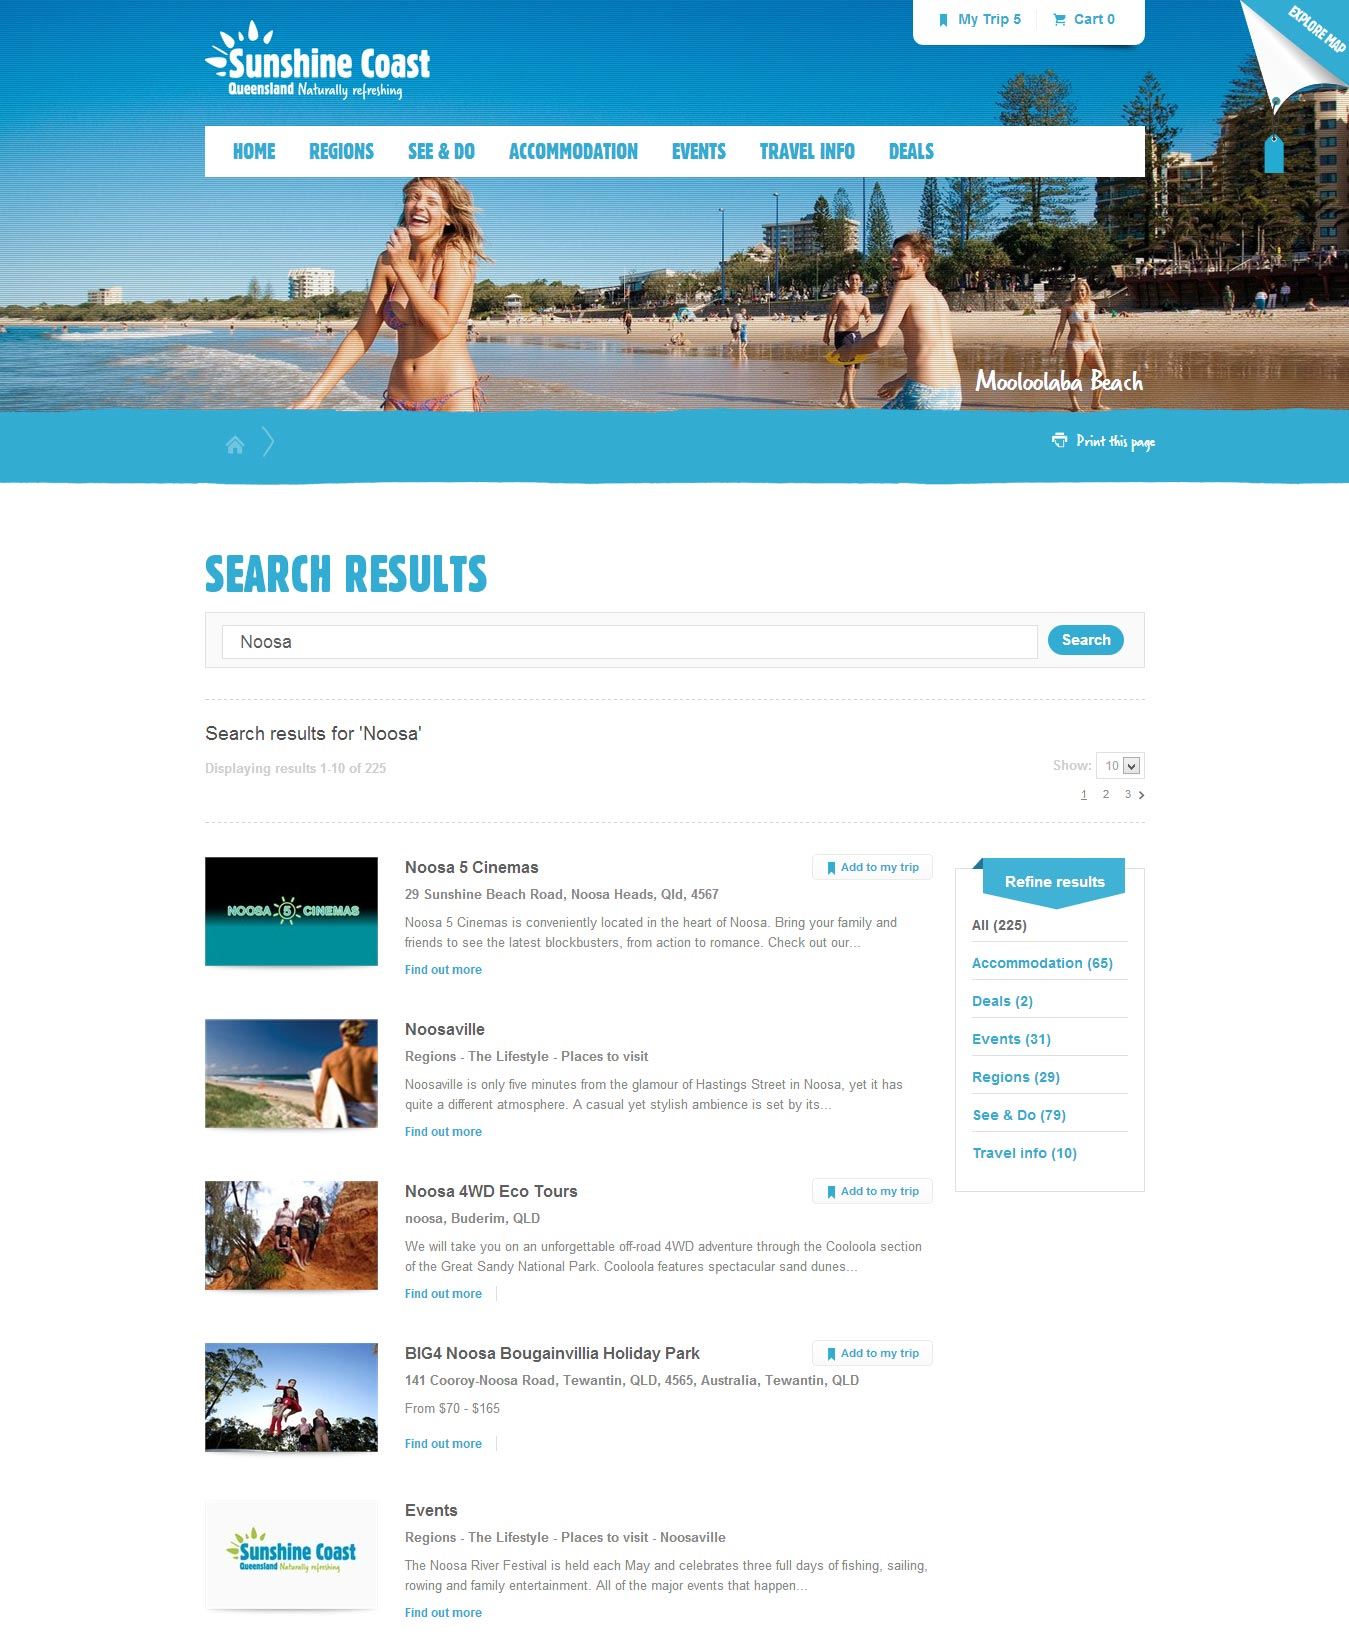 Sunshine Coast search results page.